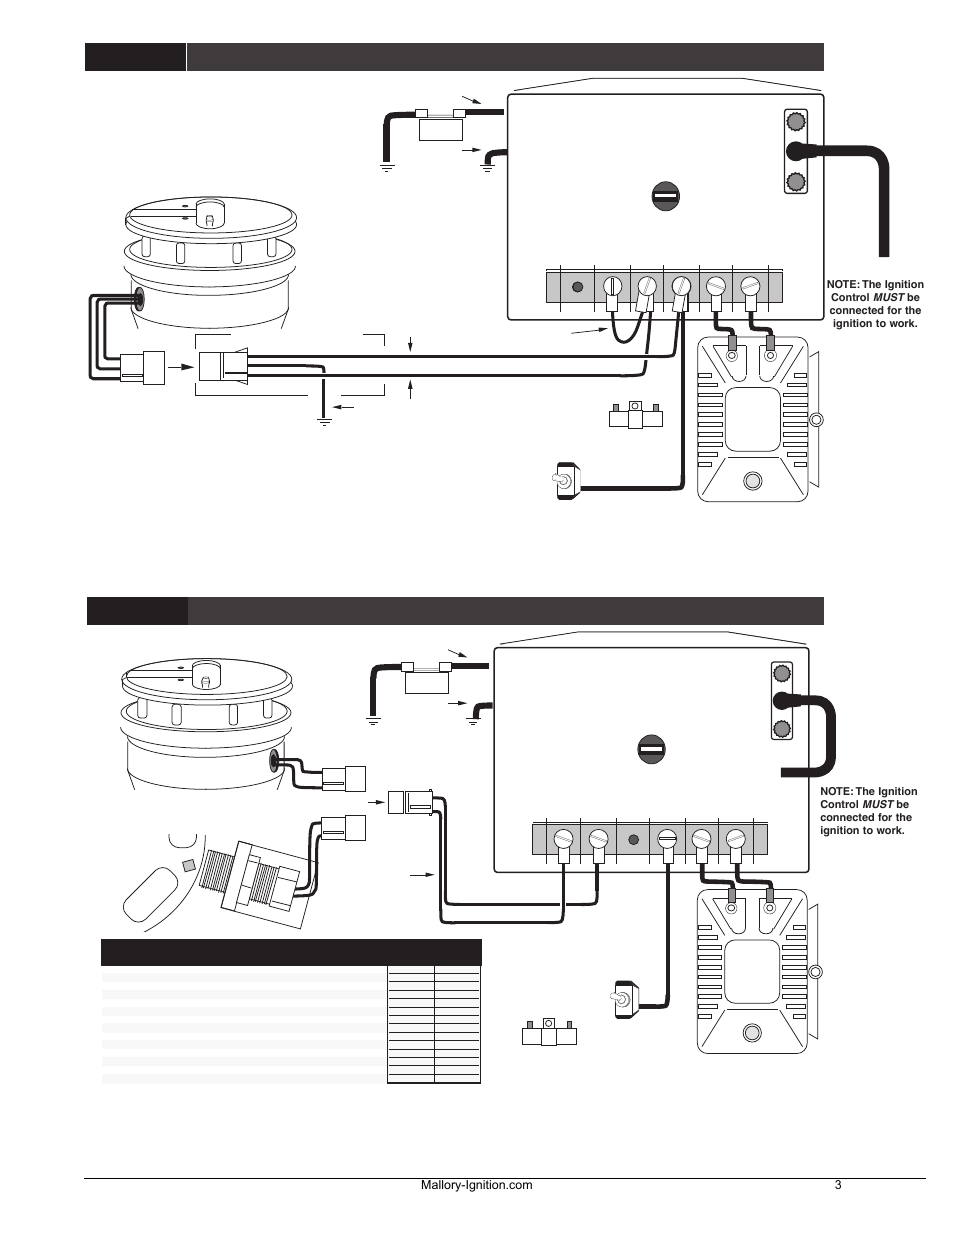 mallory marine distributor wiring diagram. Black Bedroom Furniture Sets. Home Design Ideas